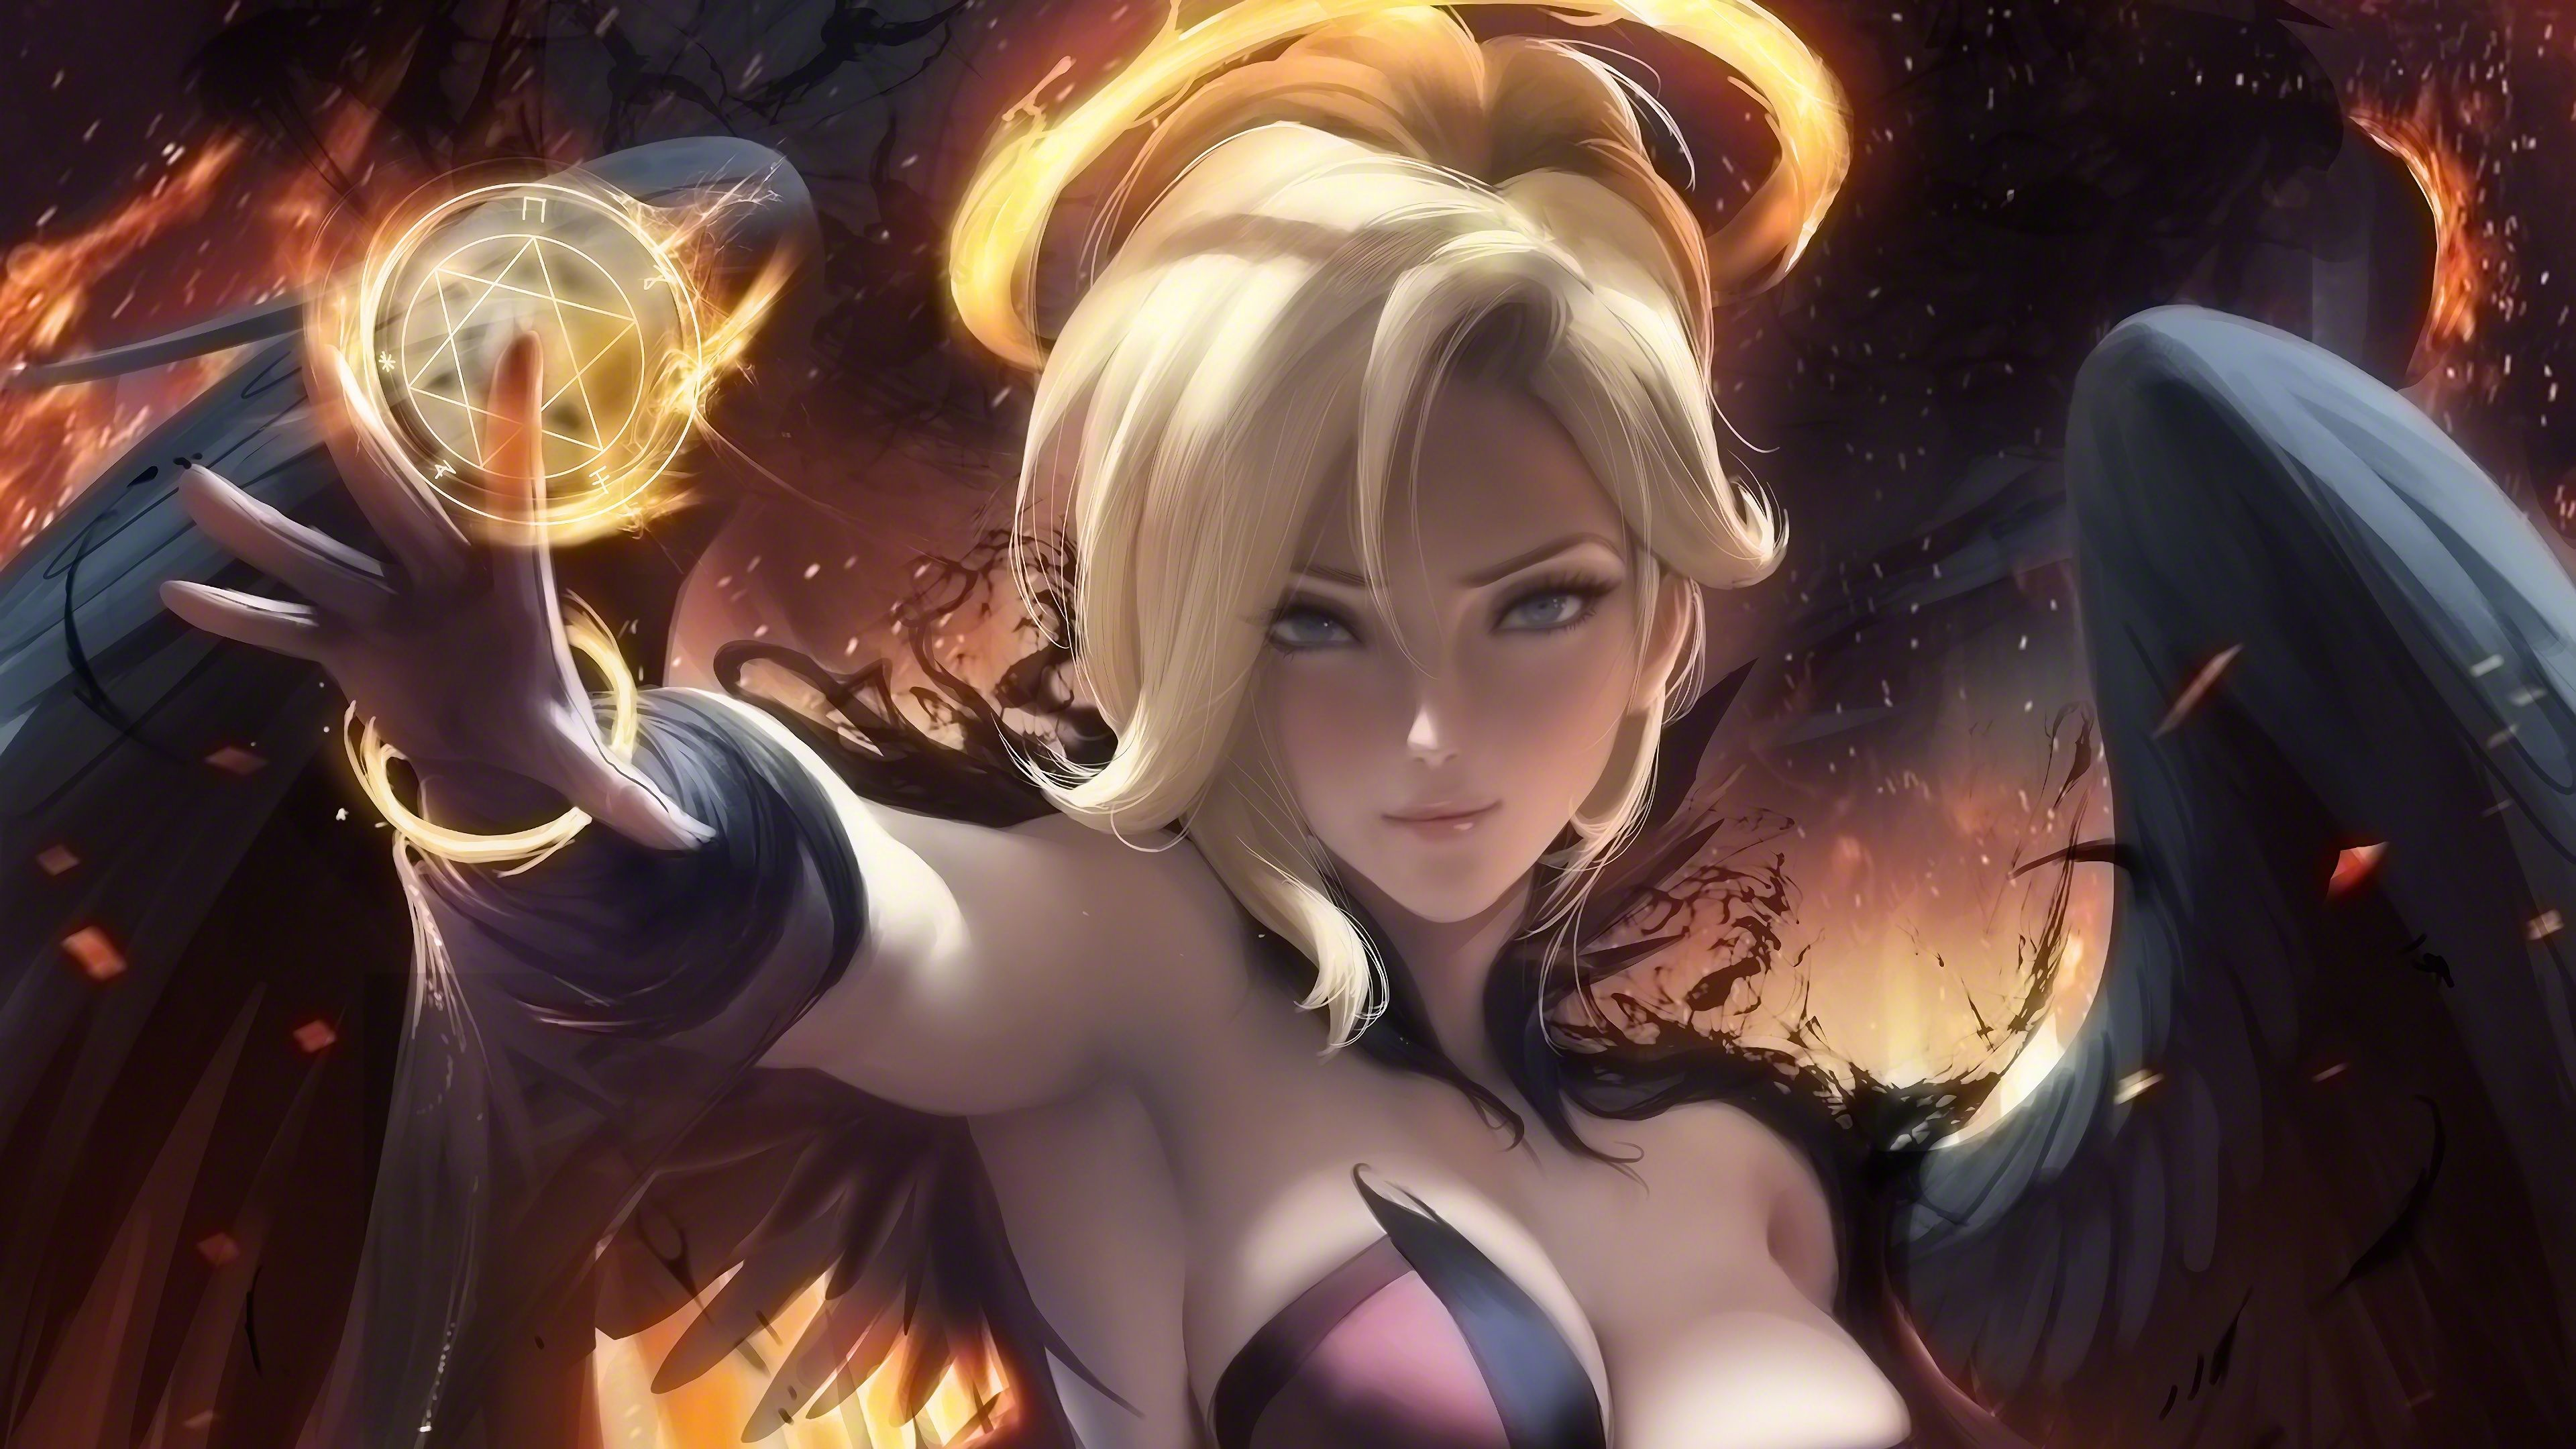 Download Page 4k Witch Mercy Overwatch Overwatch Video Game Mercy Overwatch Overwatch